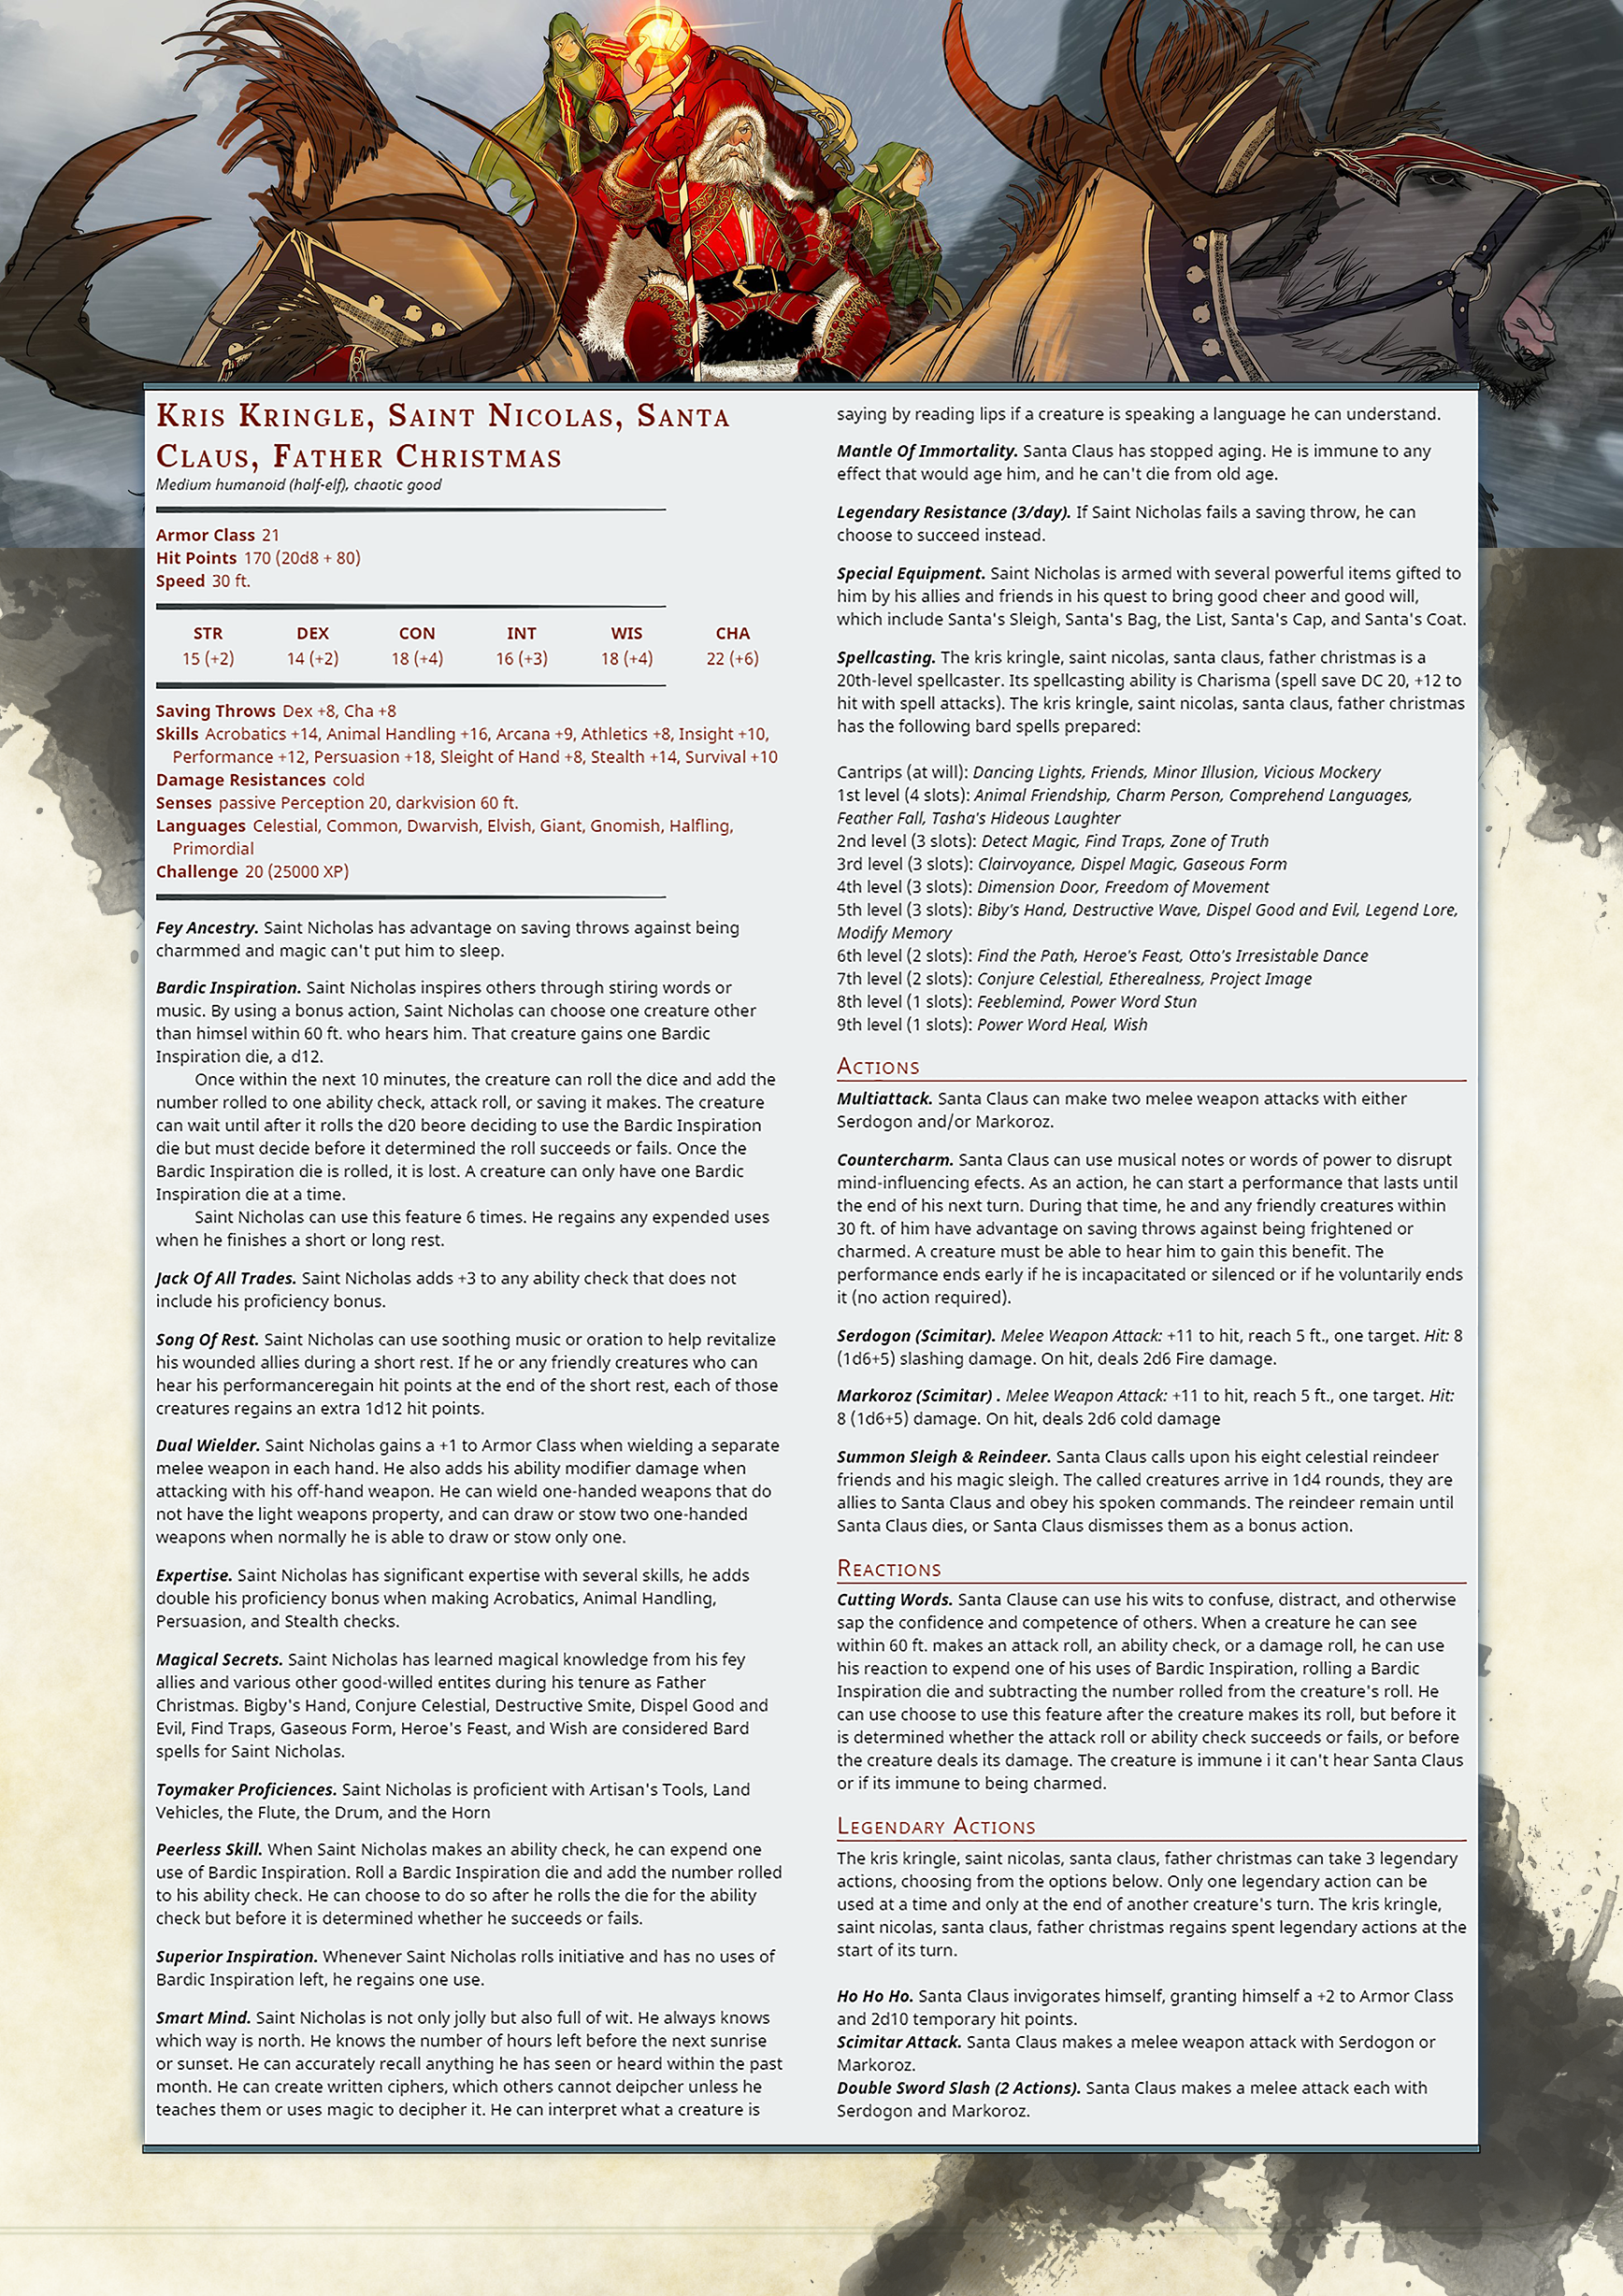 5 Versions of Santa Claus: D&D 5E Style | Fifth Edition D&D ...